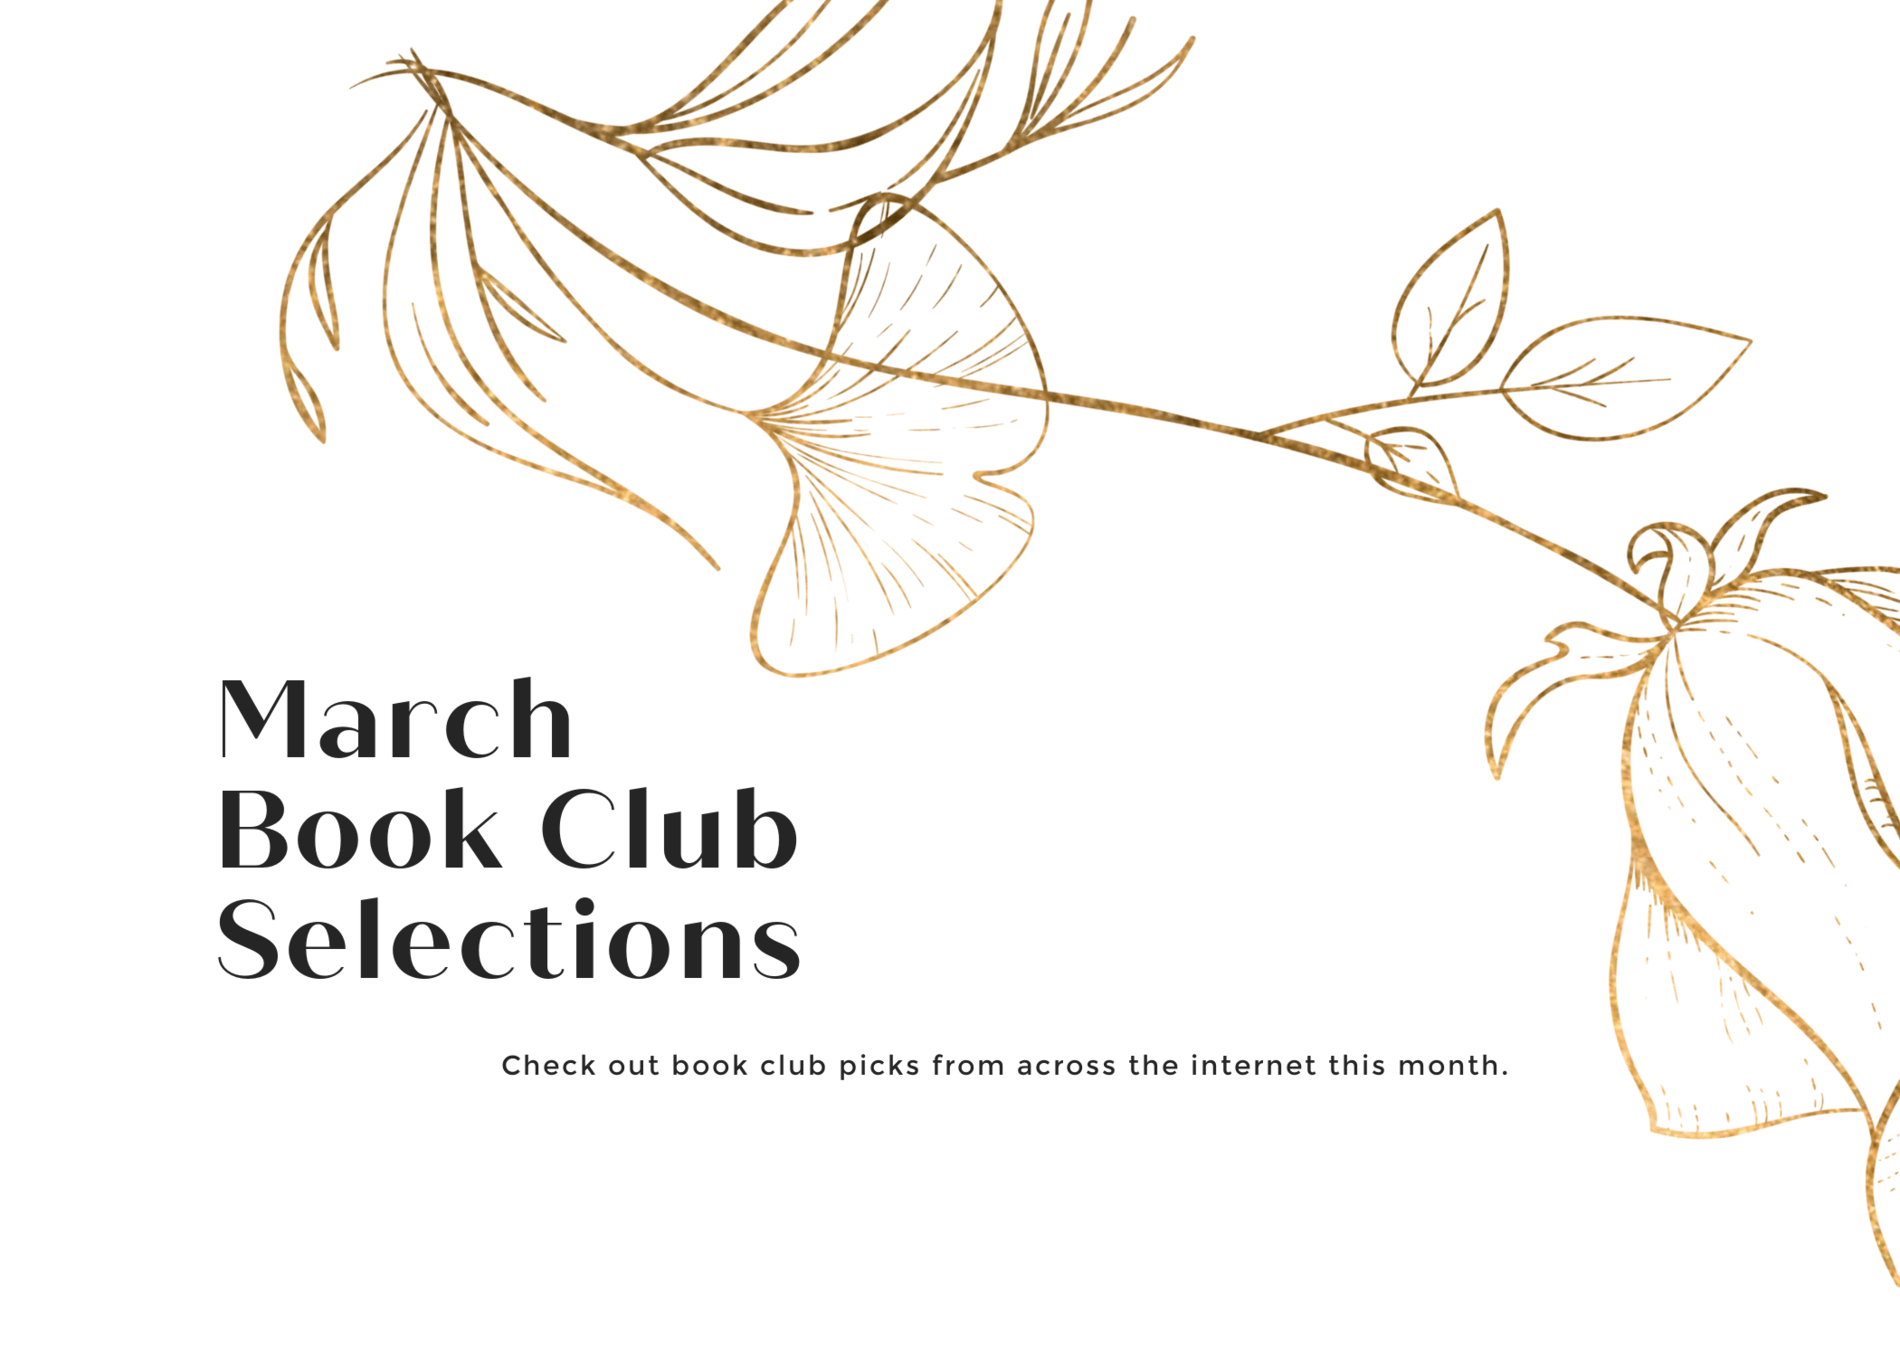 March 2021 Book Club Selections